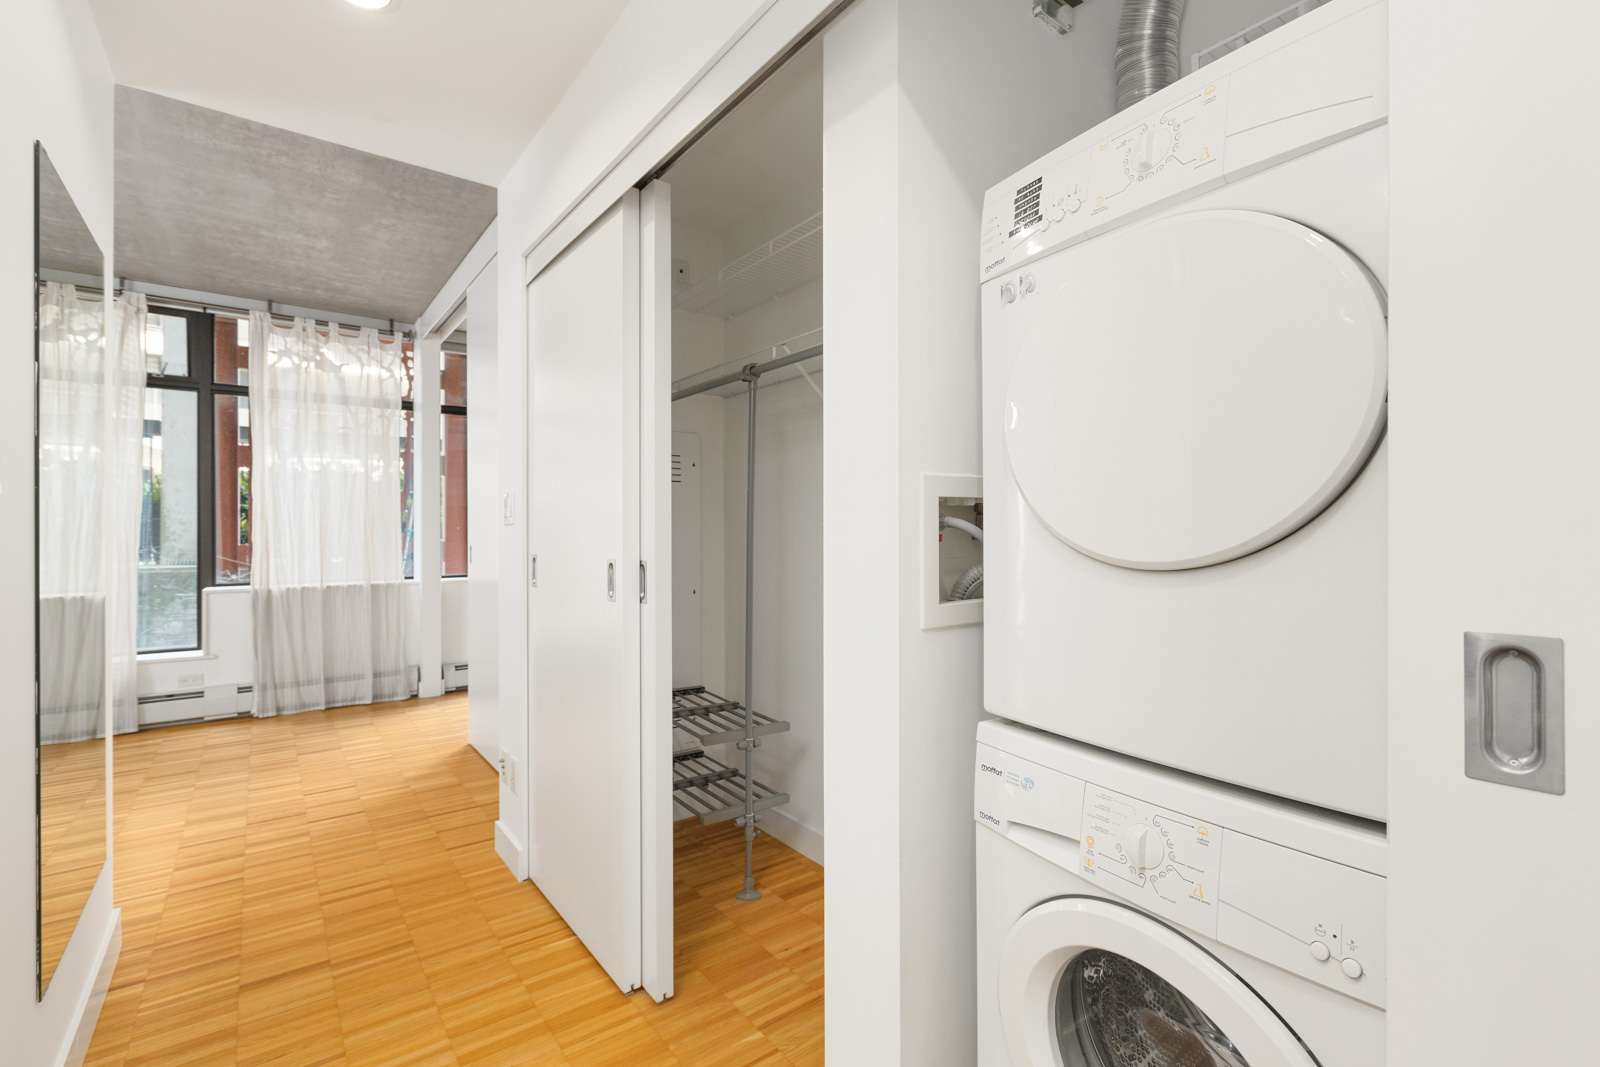 closet space and in-suite laundry